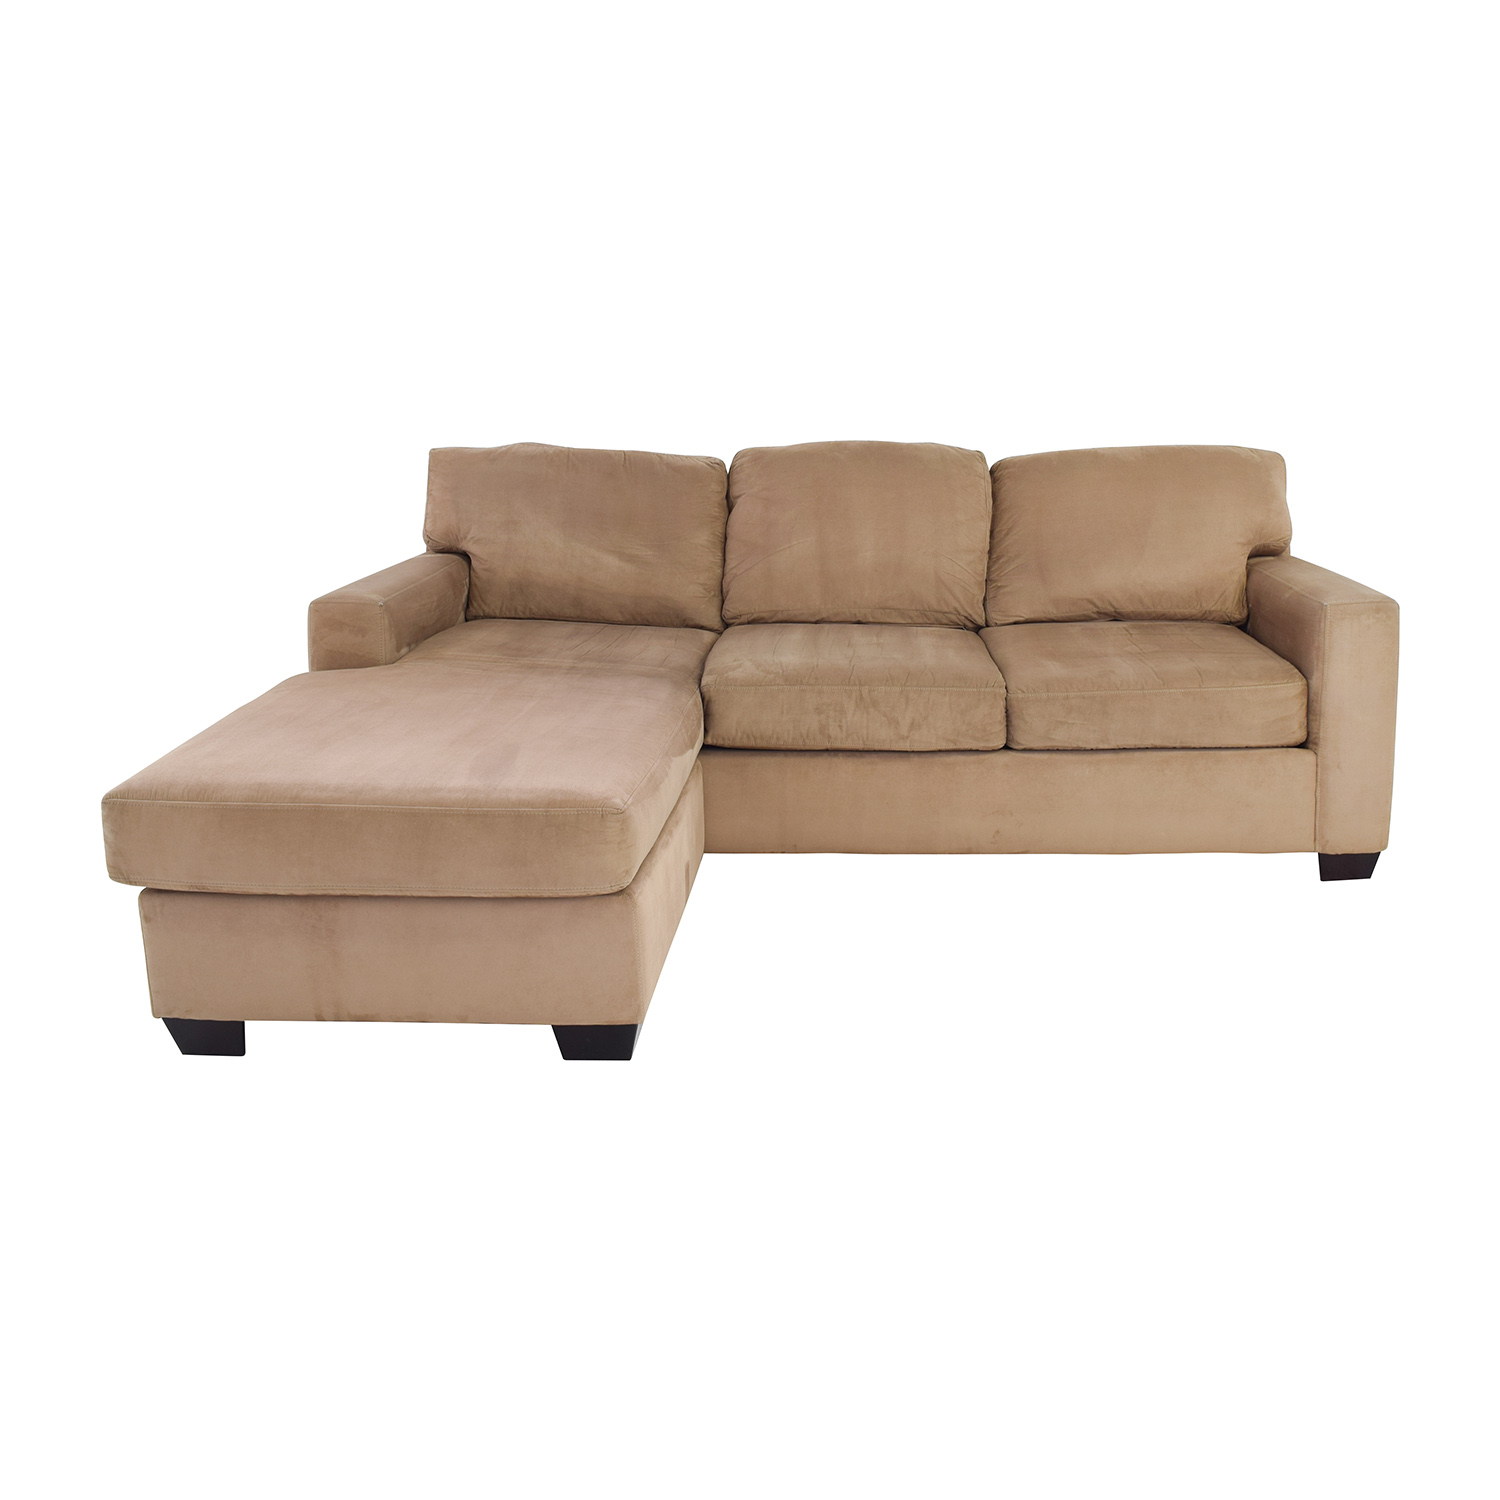 75% OFF Max Home Max Home Tan Sectional Chaise Sofa Sofas